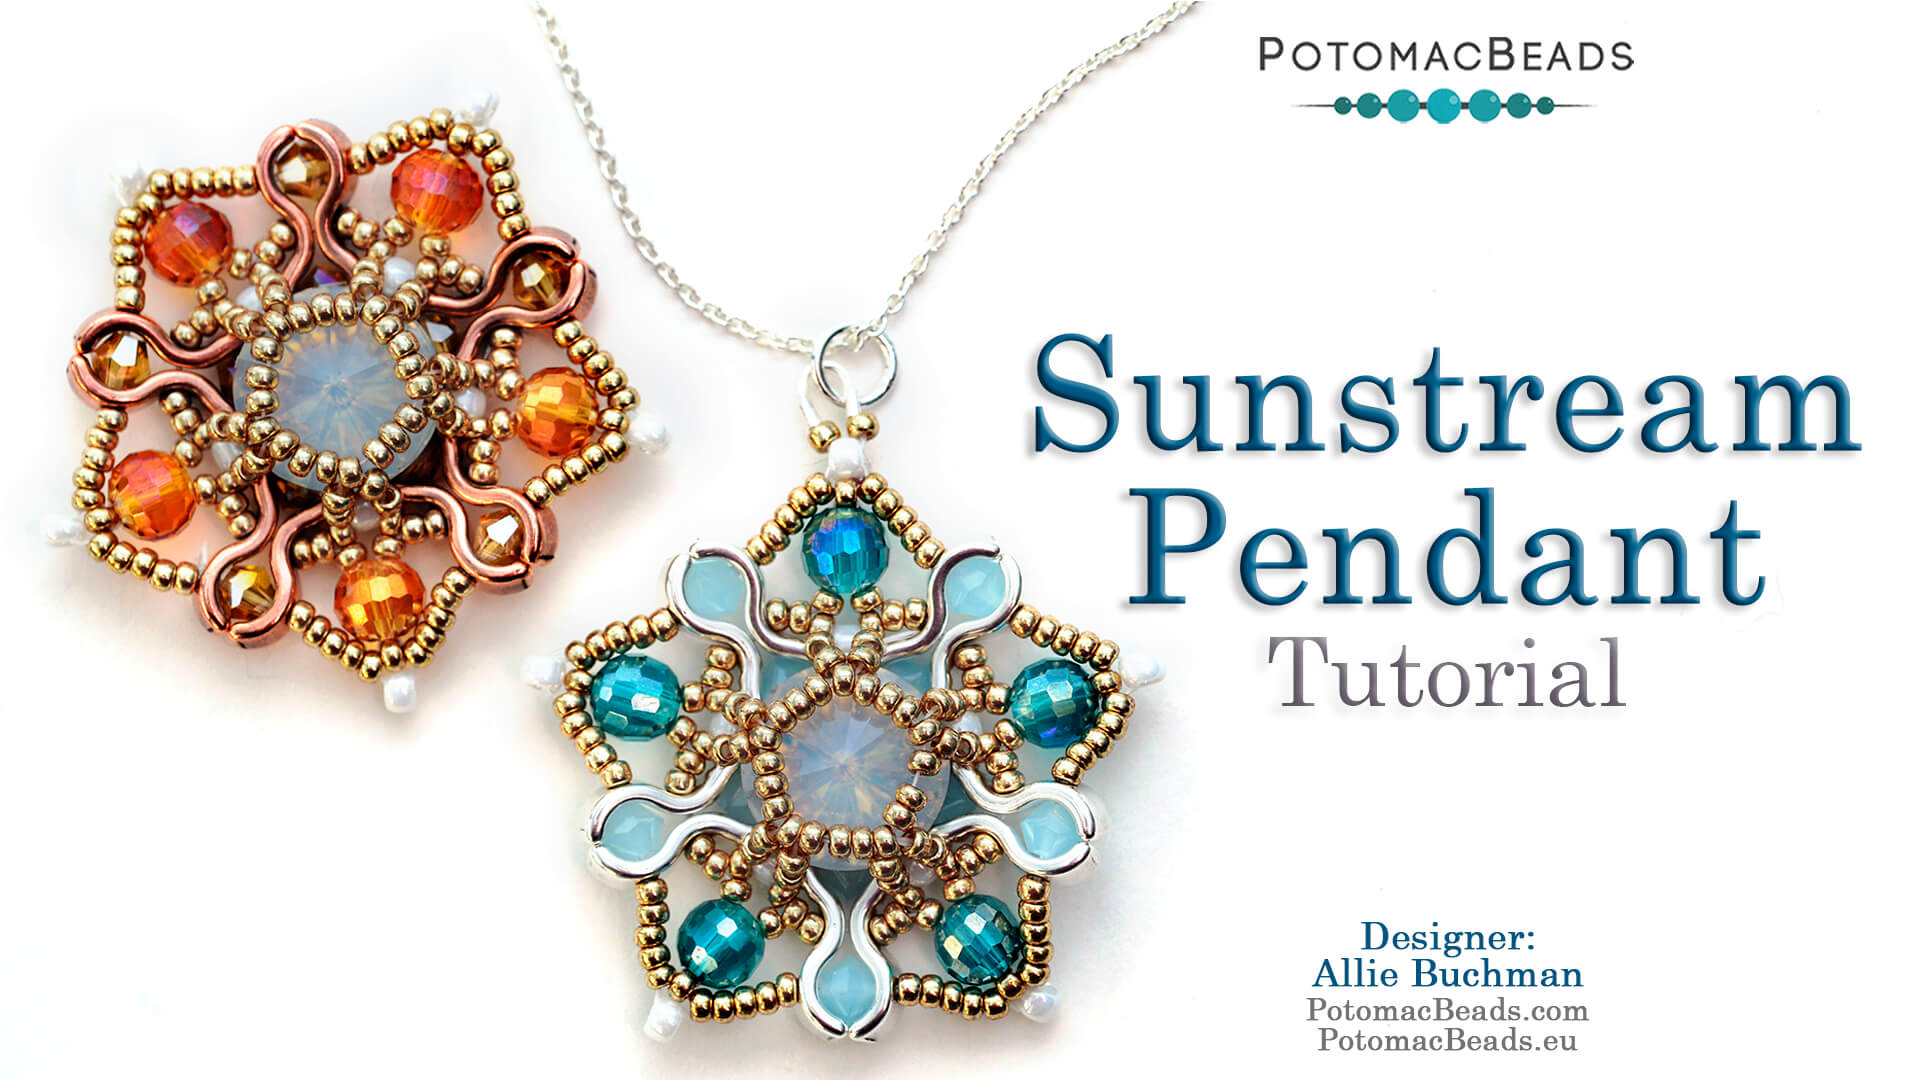 How to Bead Jewelry / Videos Sorted by Beads / All Other Bead Videos / Sunstream Pendant Tutorial